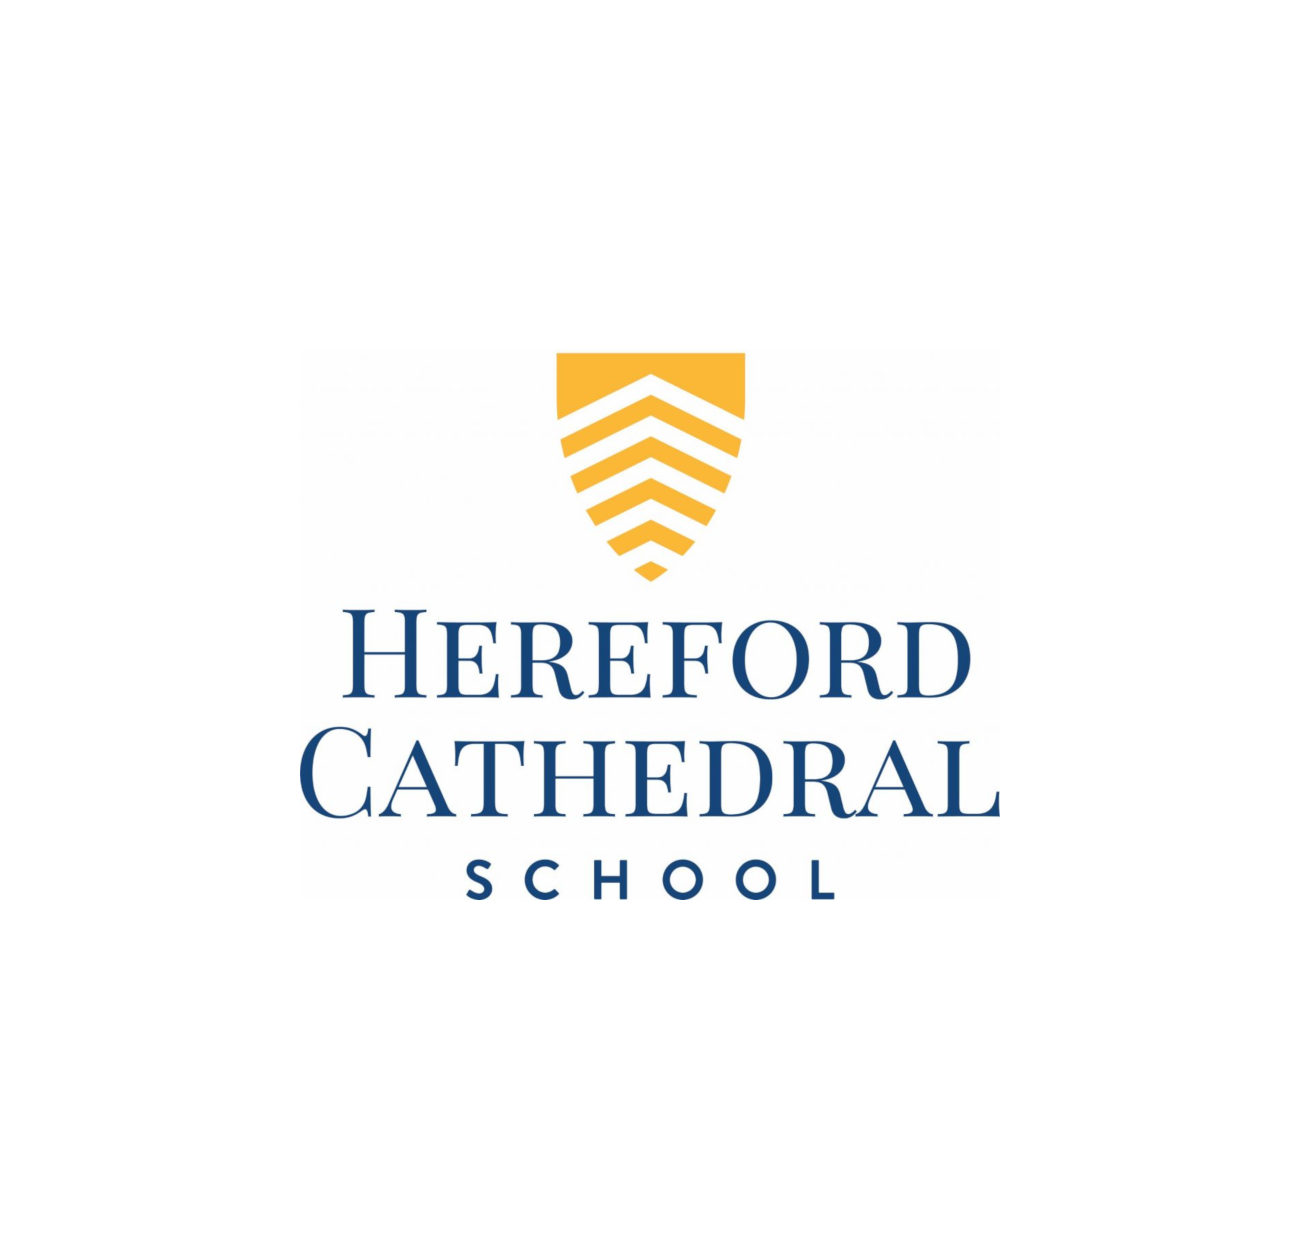 Dr Michael Gray Appointed as Headmaster of Hereford Cathedral School